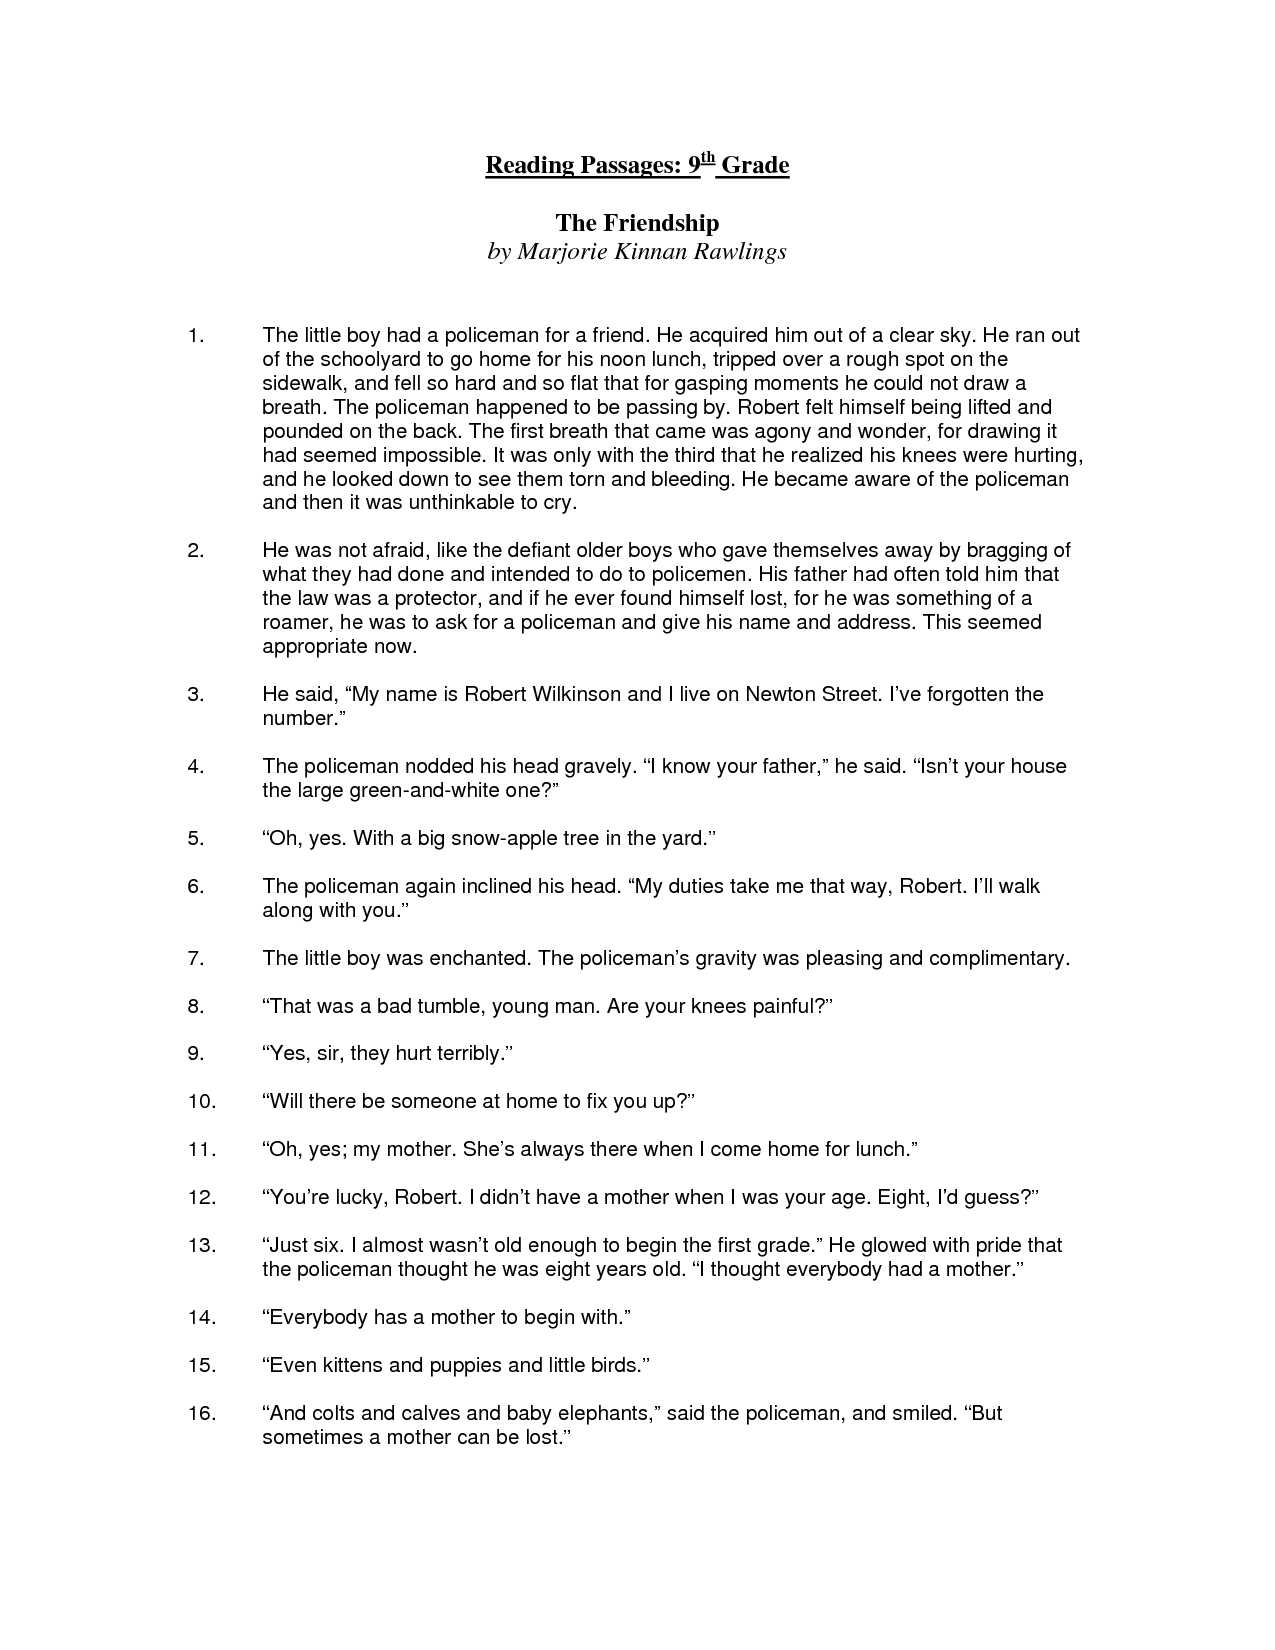 9th Grade Reading Comprehension Worksheets in 2020   Comprehension  worksheets [ 1650 x 1275 Pixel ]